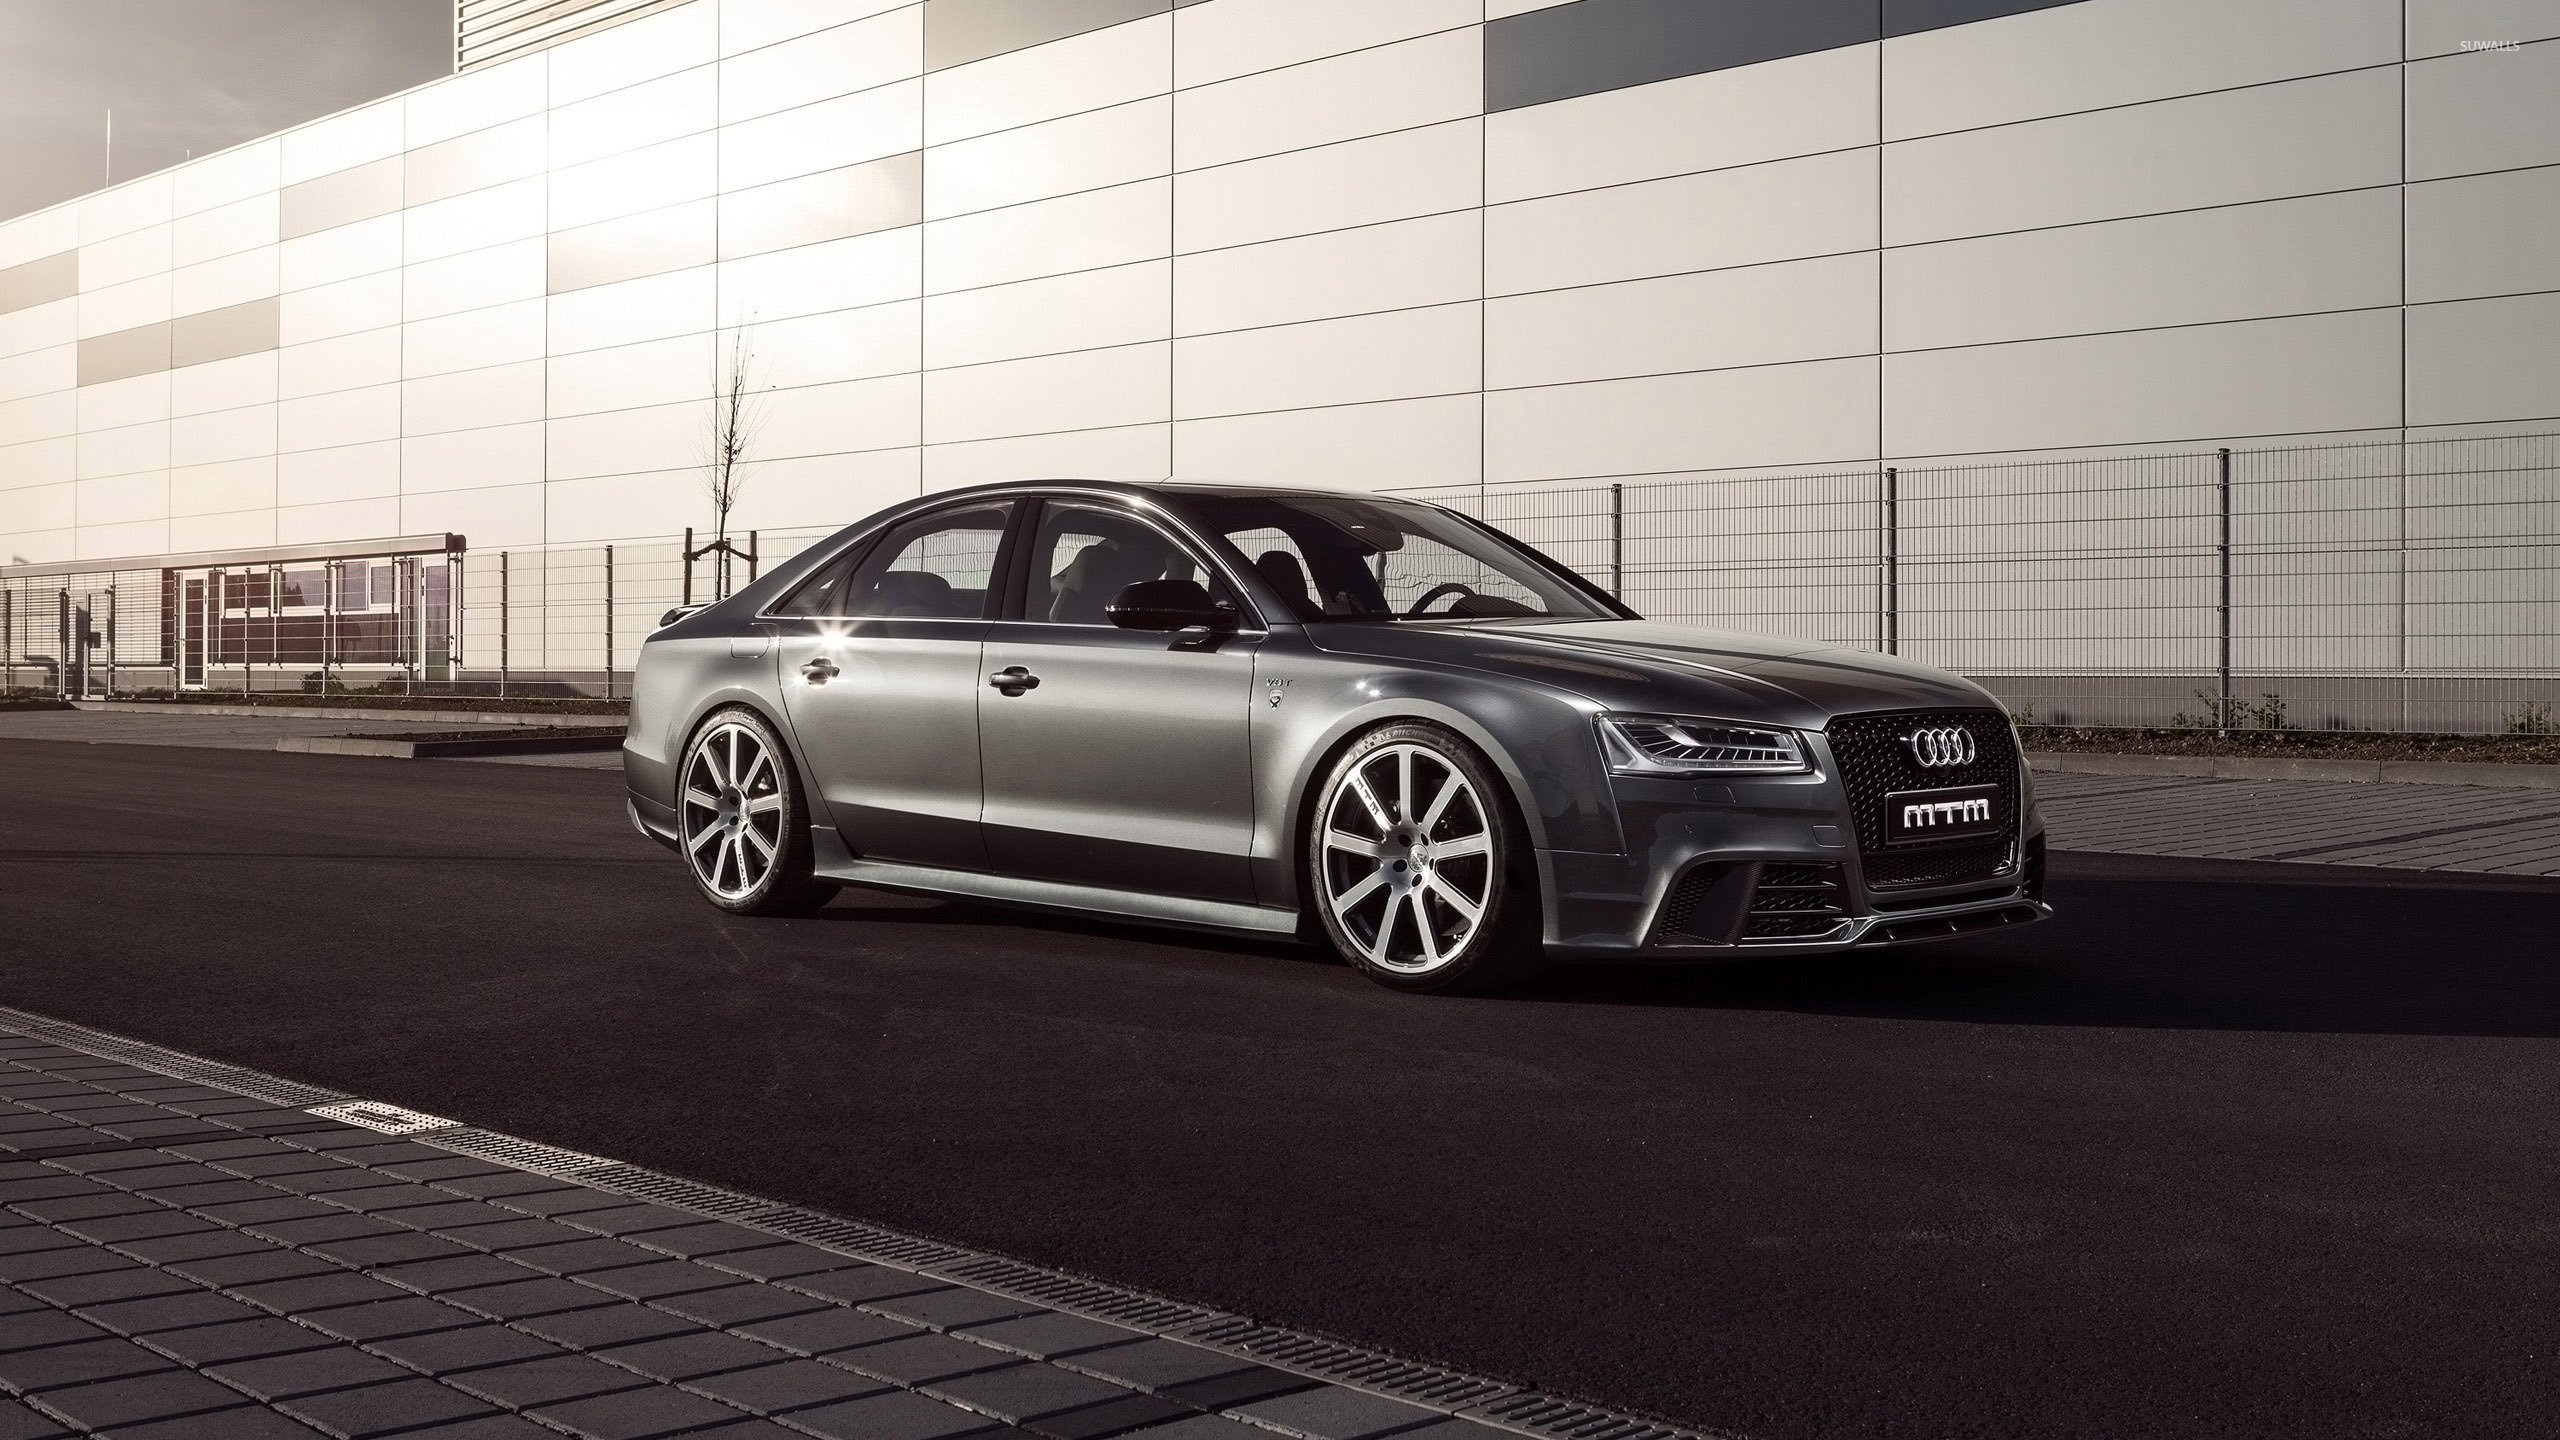 Audi S8 Wallpapers   6R6C999   4USkY 2560x1440